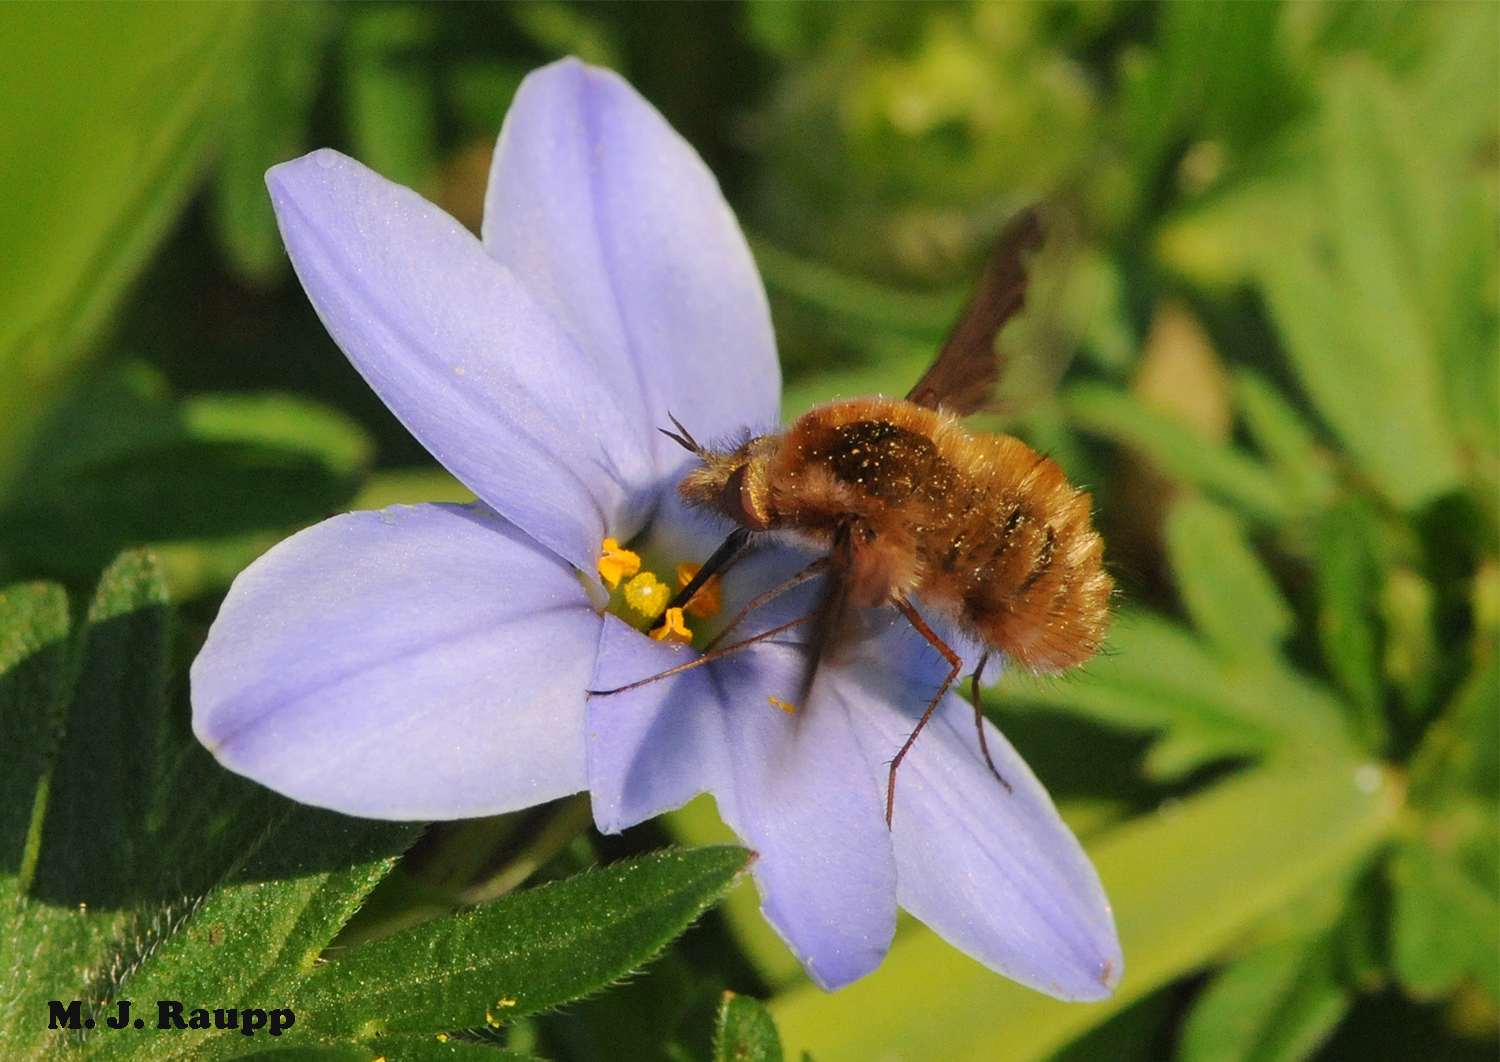 Ground nesting bees beware of the bee fly: Bombyliidae — Bug of the Week